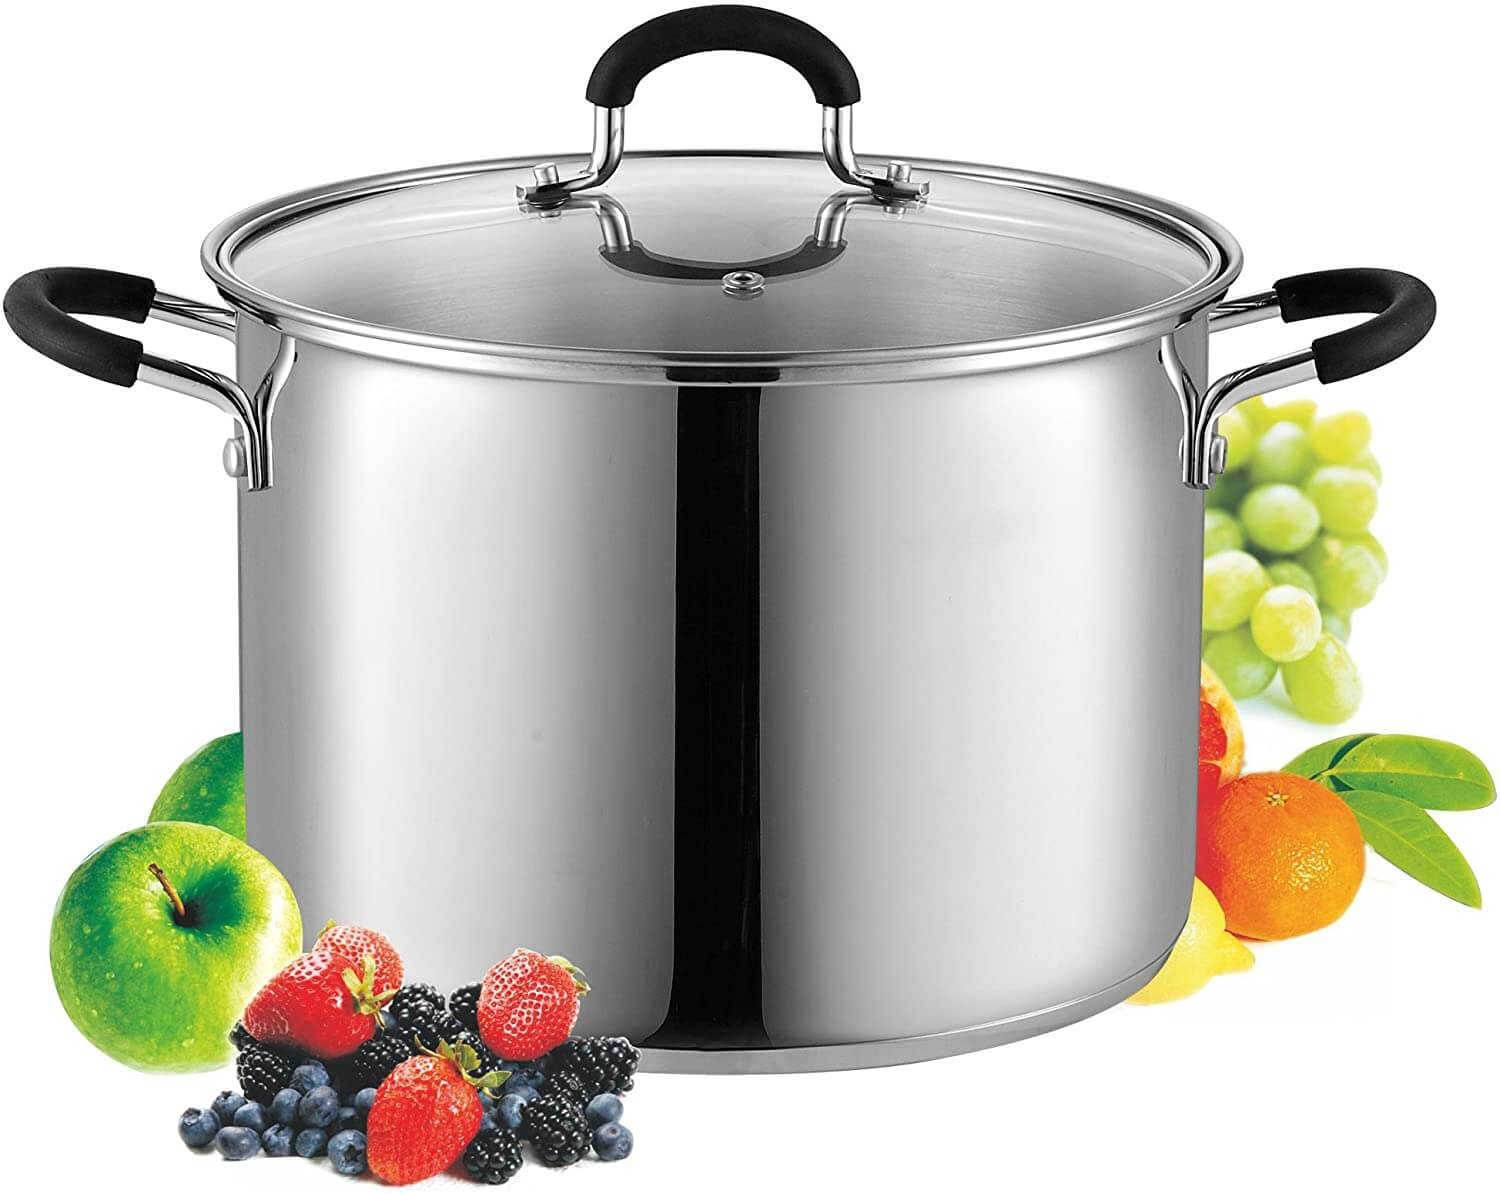 Cook N Home Quart Stockpot